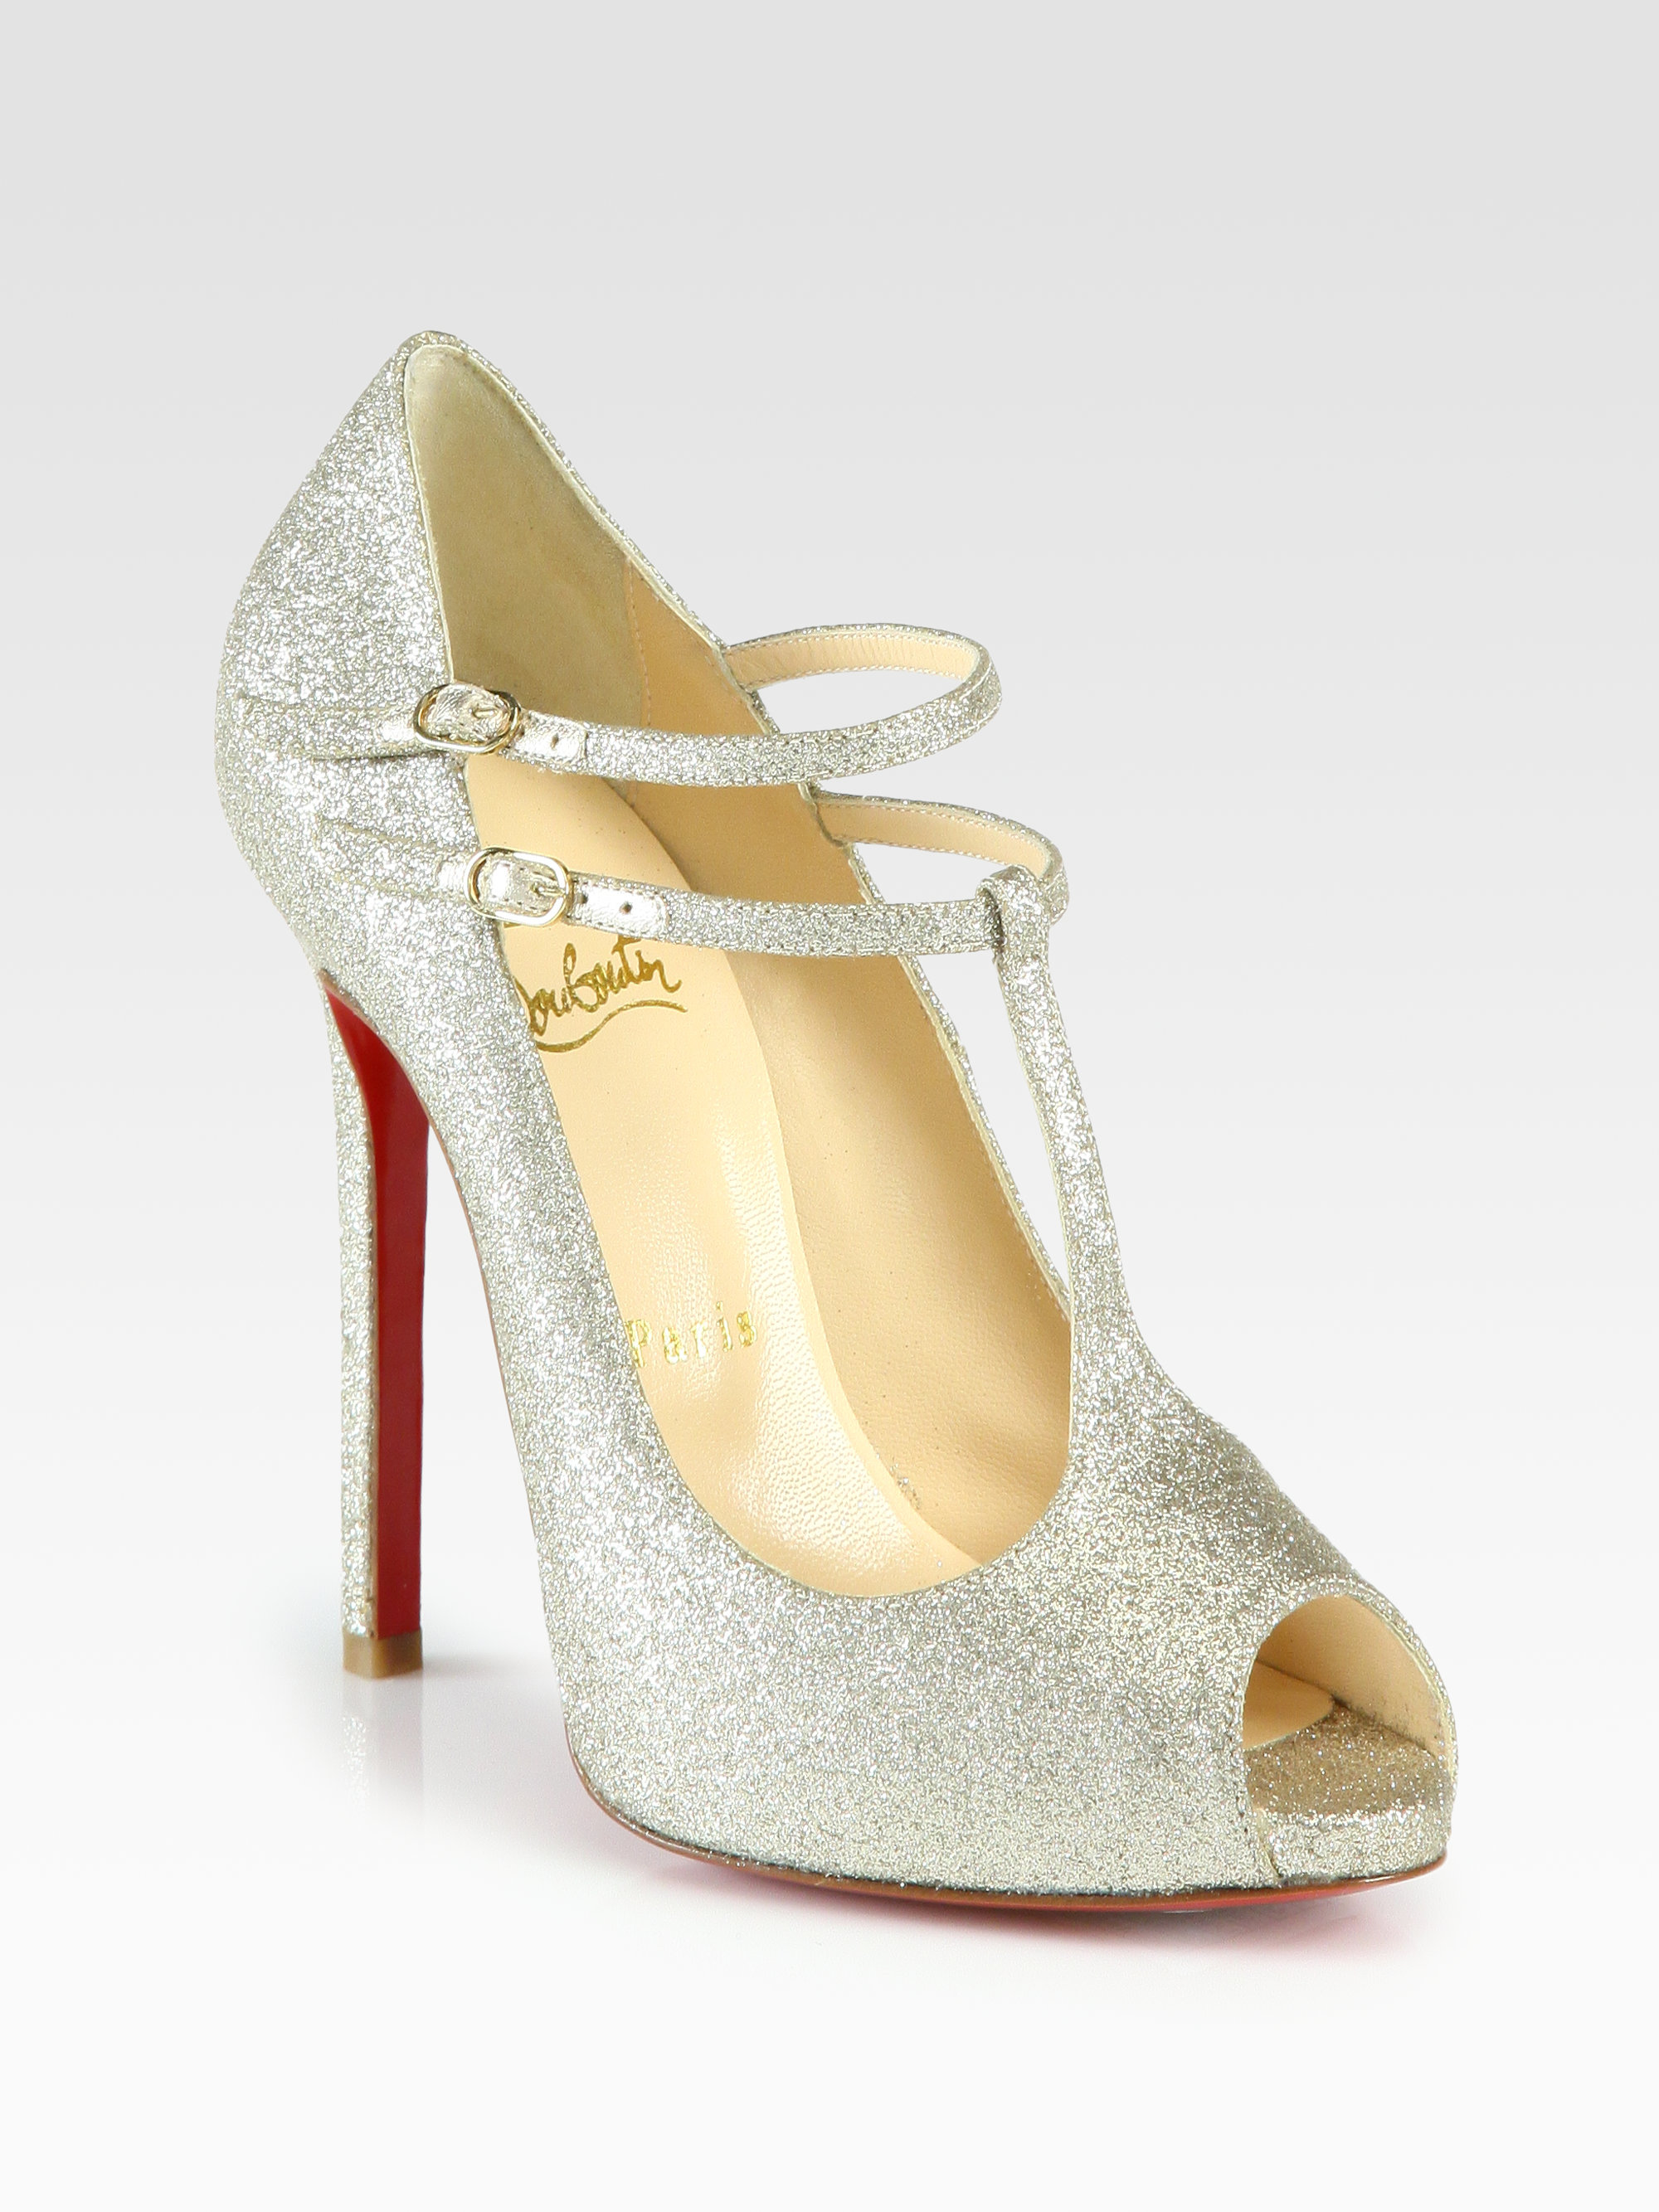 christian louboutin glitter platform pumps - Bbridges